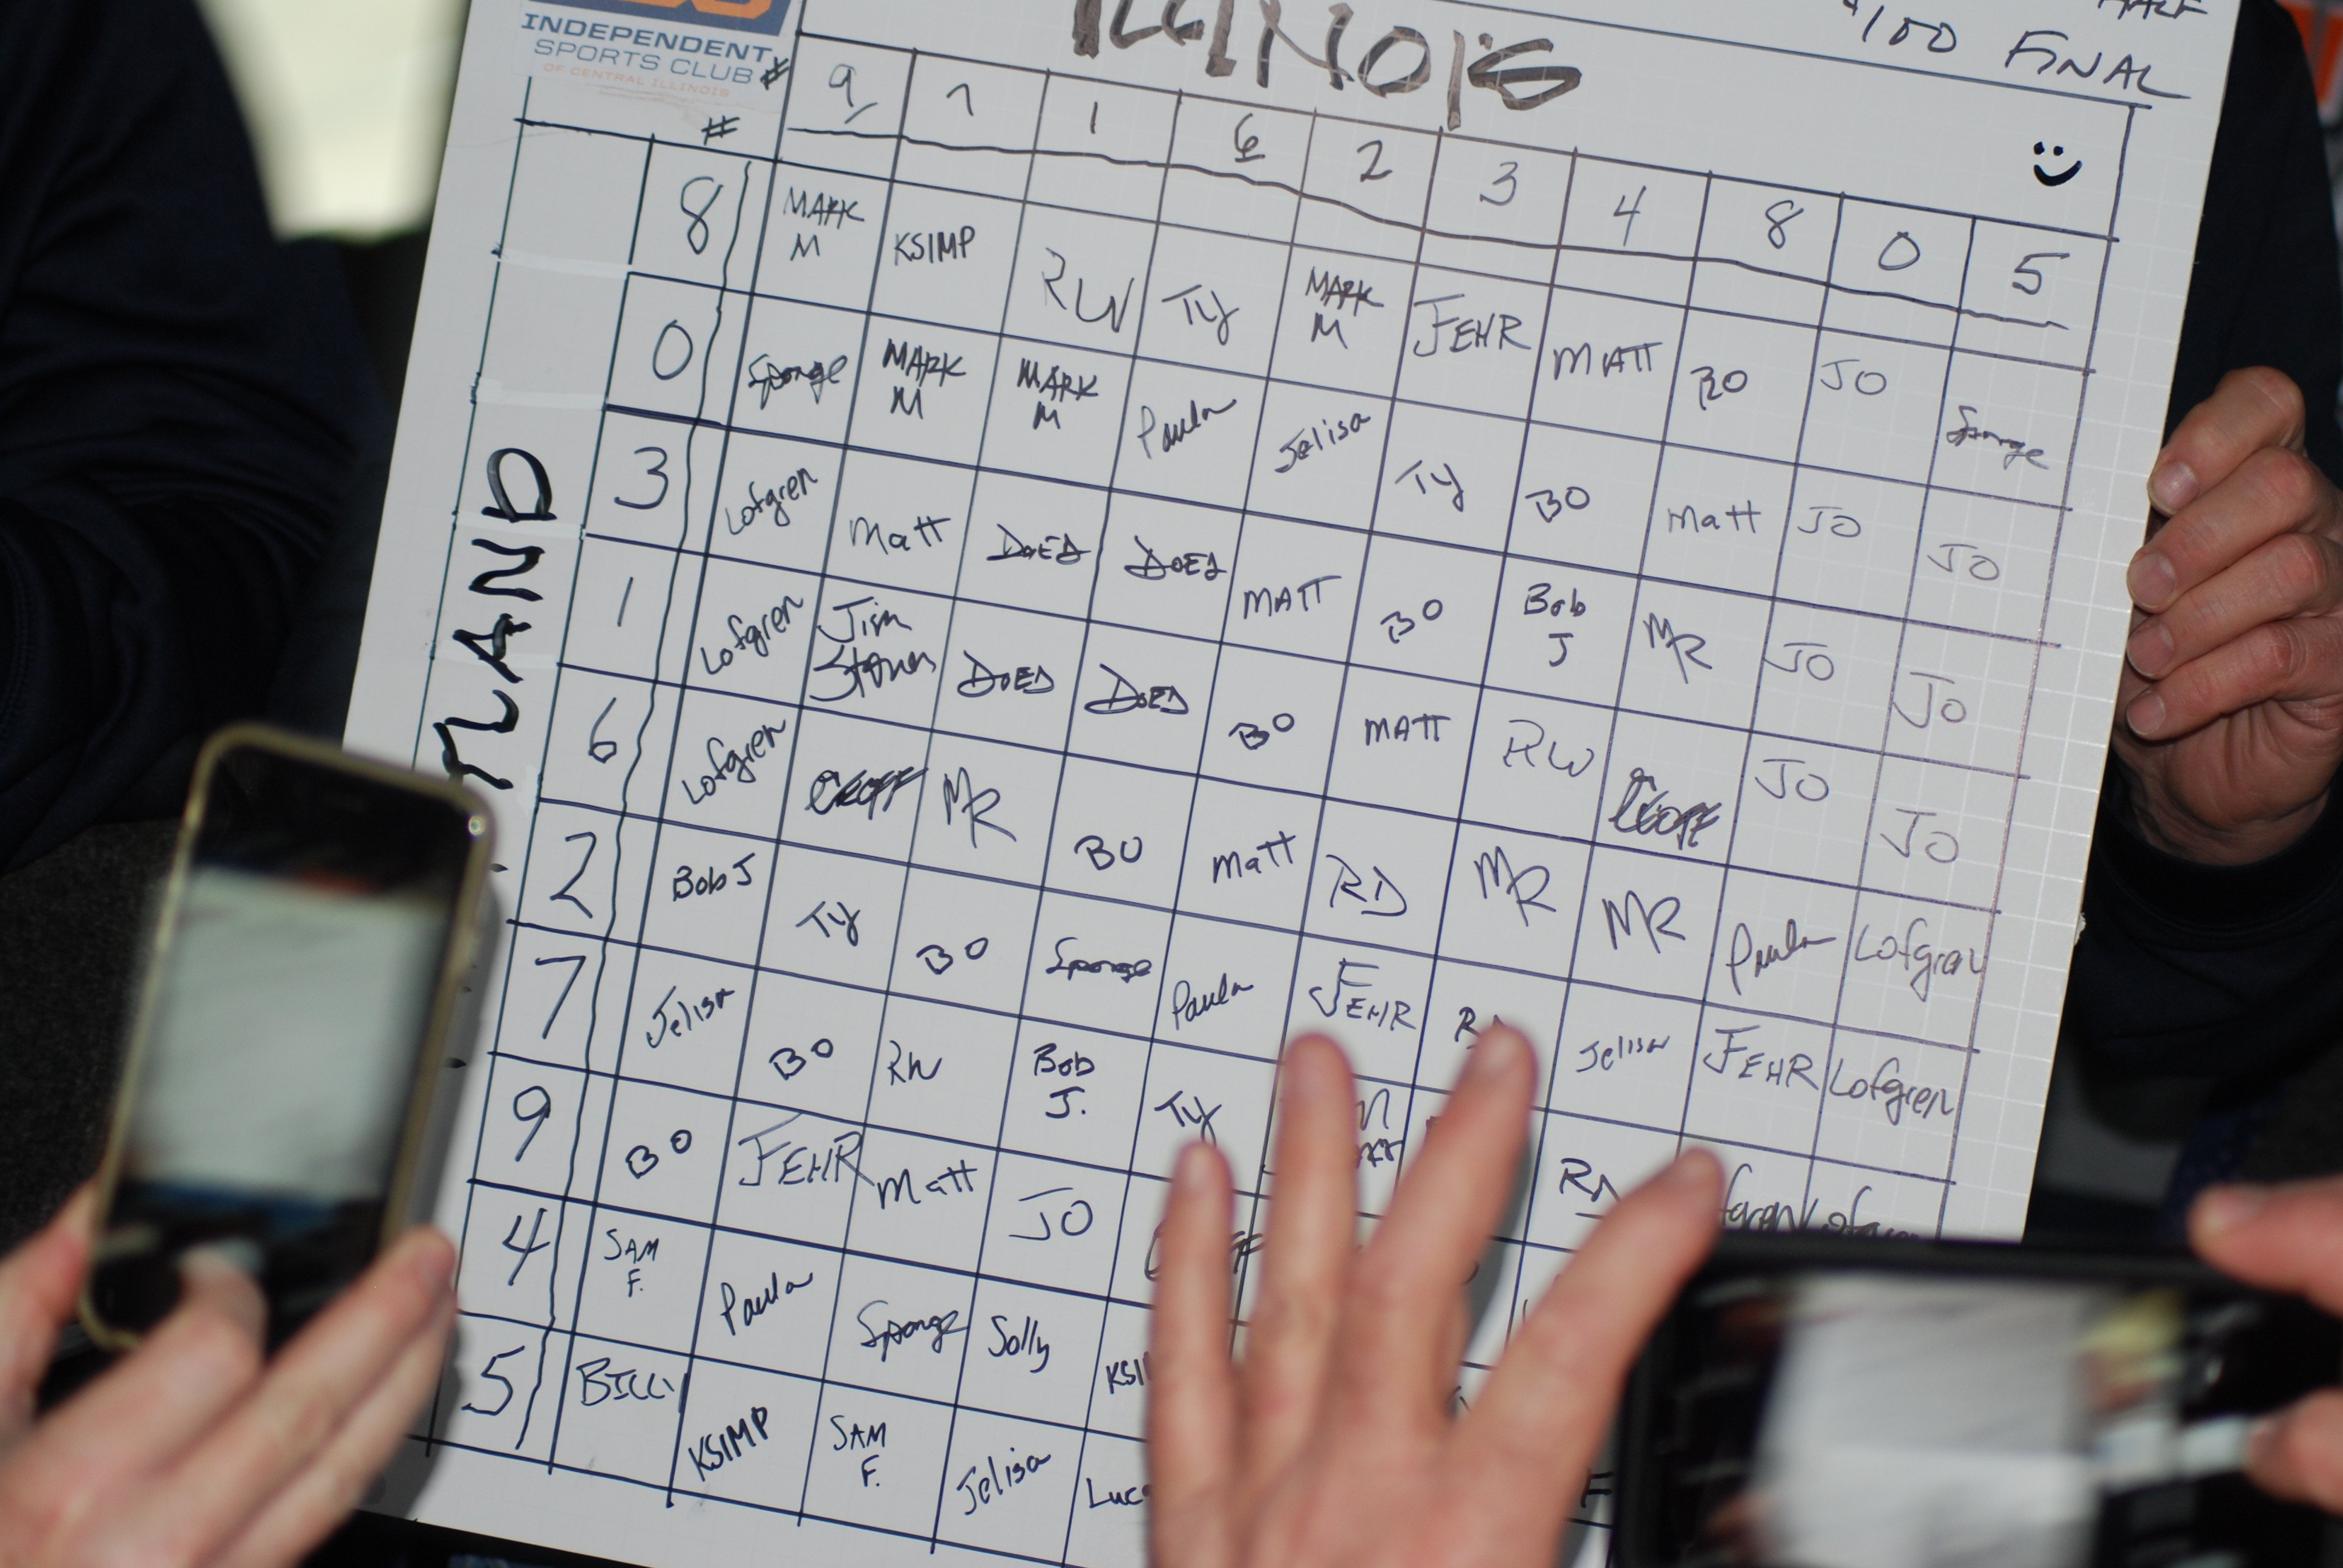 100 Square Raffle Board Ncaa Squares – Independent Sports Club Of Central Illinois